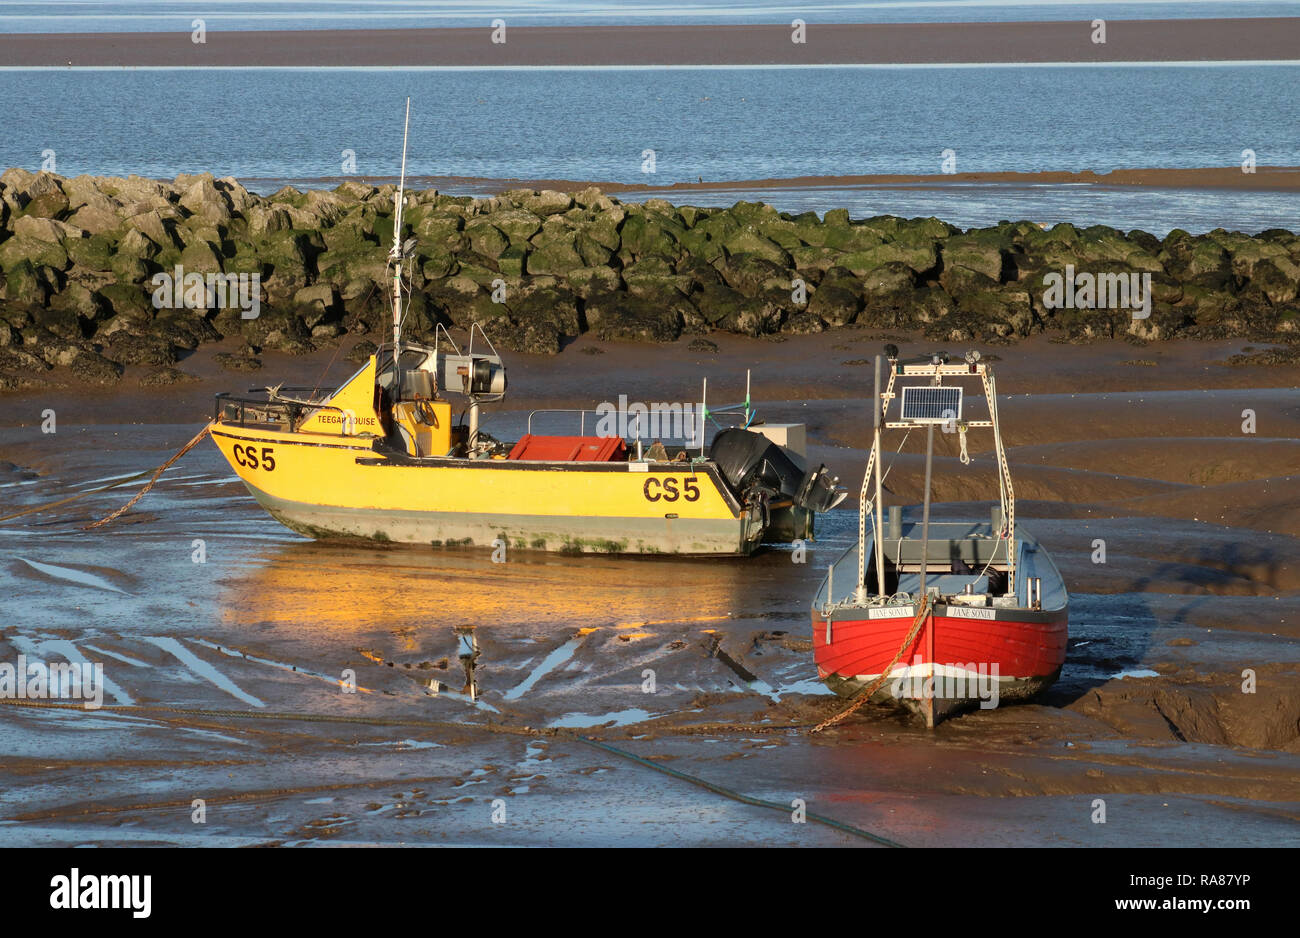 Two small fishing boats, one yellow and one red, on mud at low tide on New Year's Day by the Stone Jetty at Morecambe, Lancashire, United Kingdom. Stock Photo